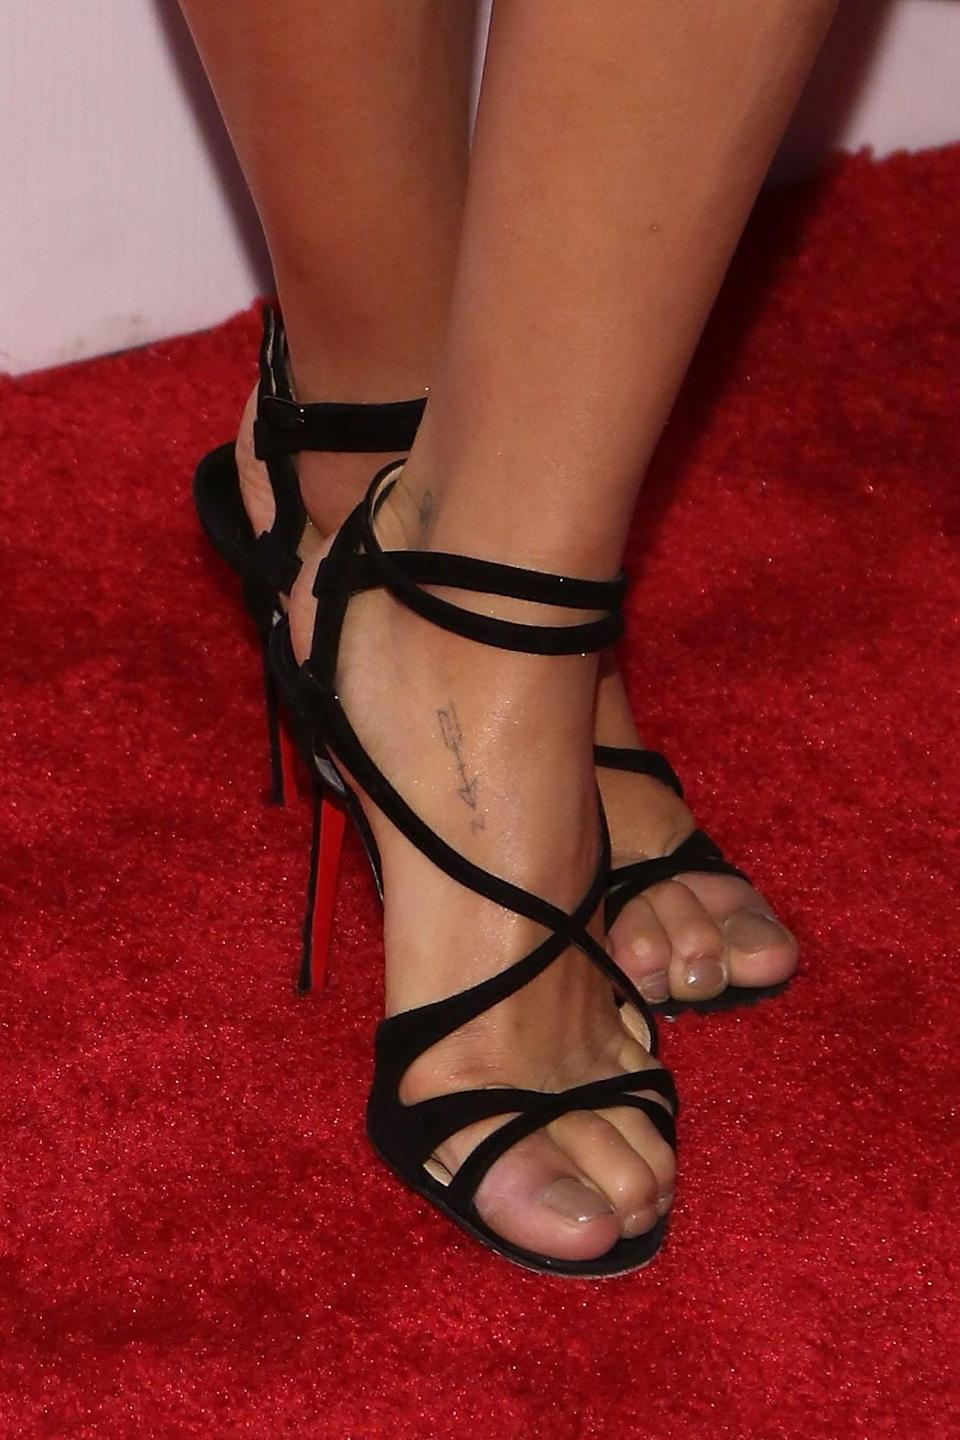 <p>Kravitz has arrow tattoos on both of her feet, with one headed toward the North and the other toward South. She also has a skull and crossbones symbol on her left ankle.</p>